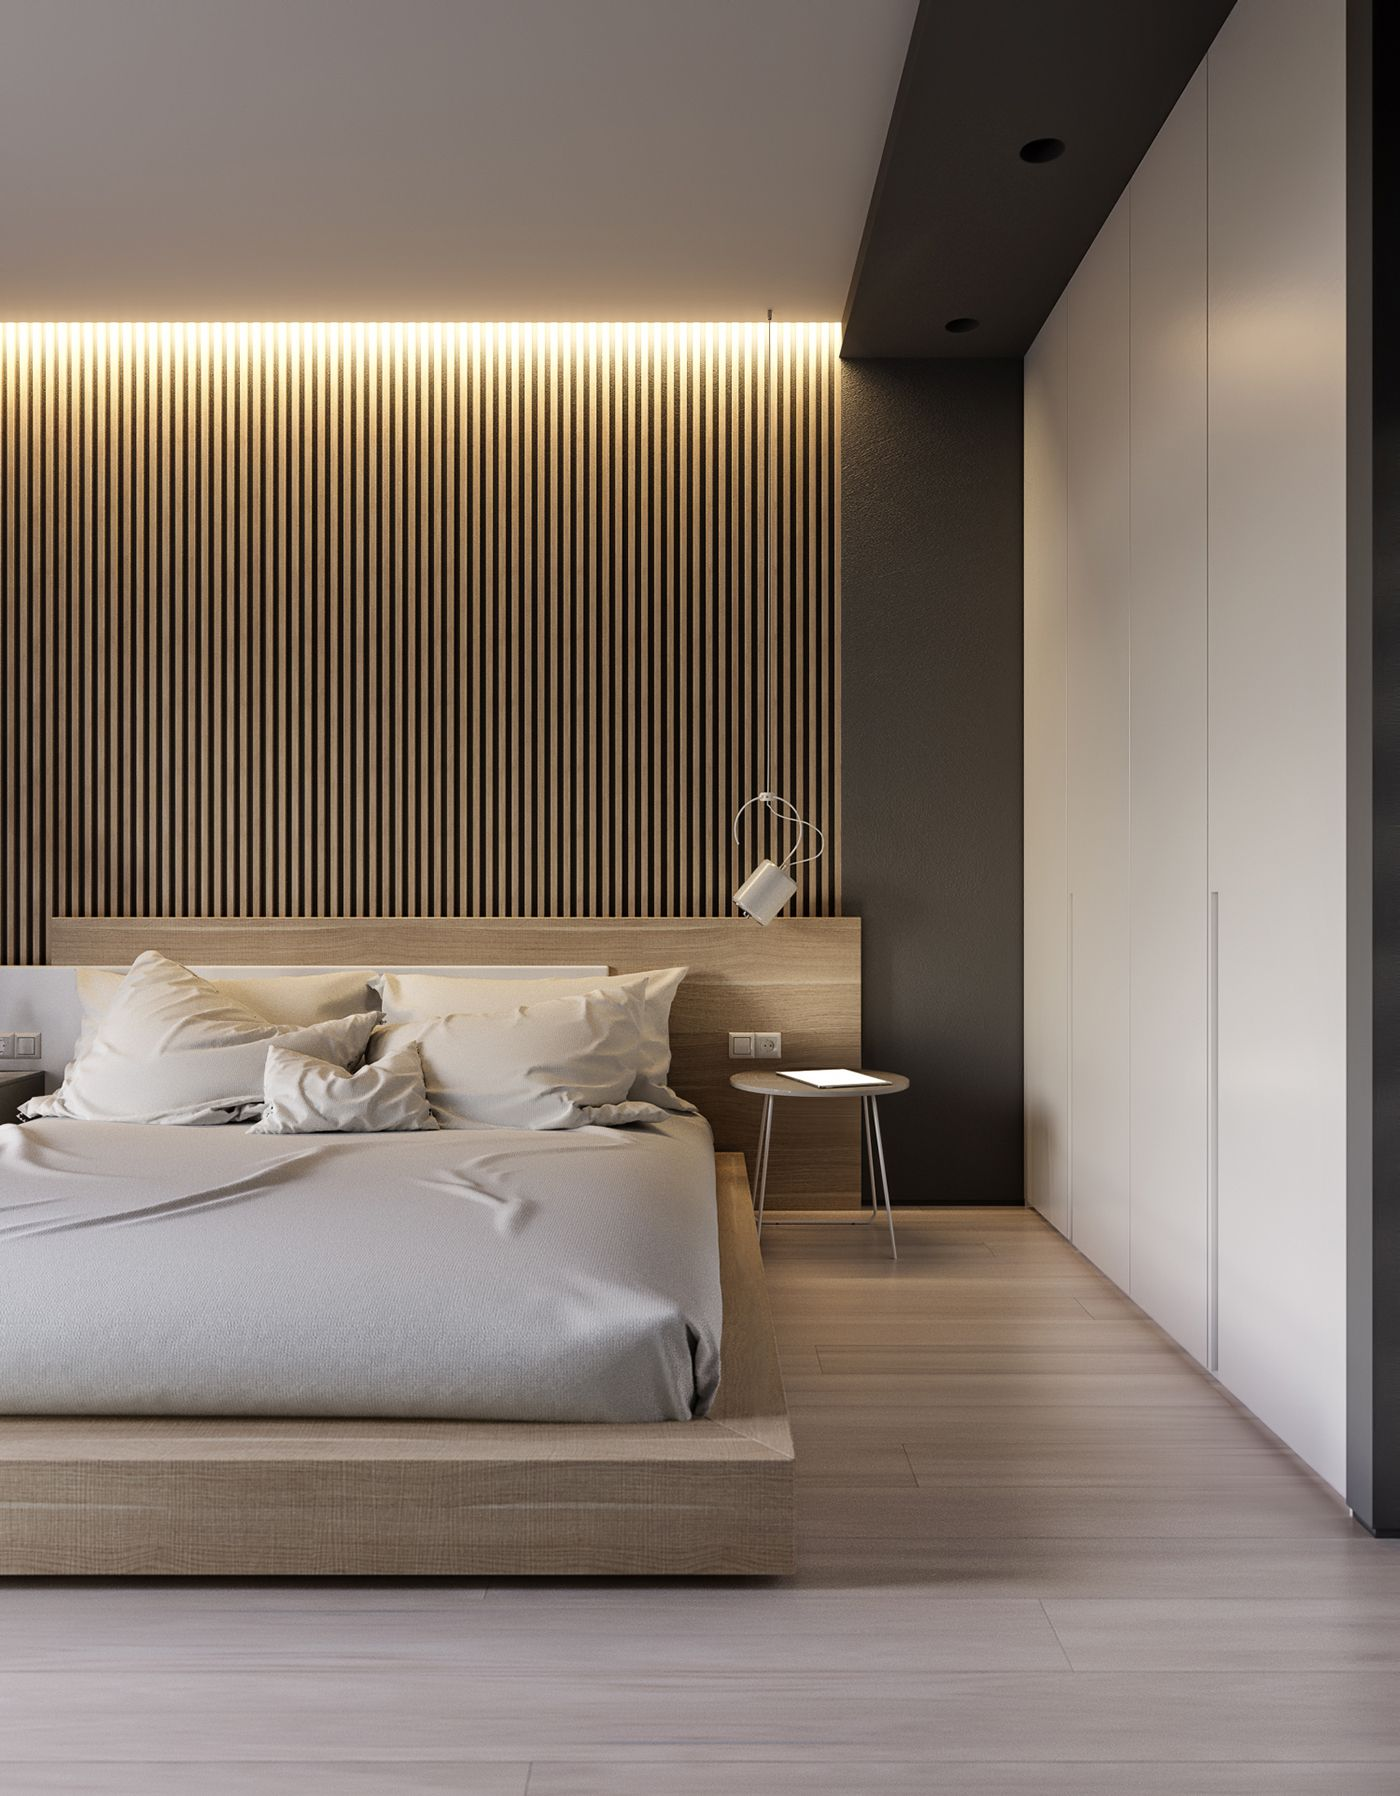 M4 Kildinov On Behance Modern Minimalist Bedroom Bedroom Design